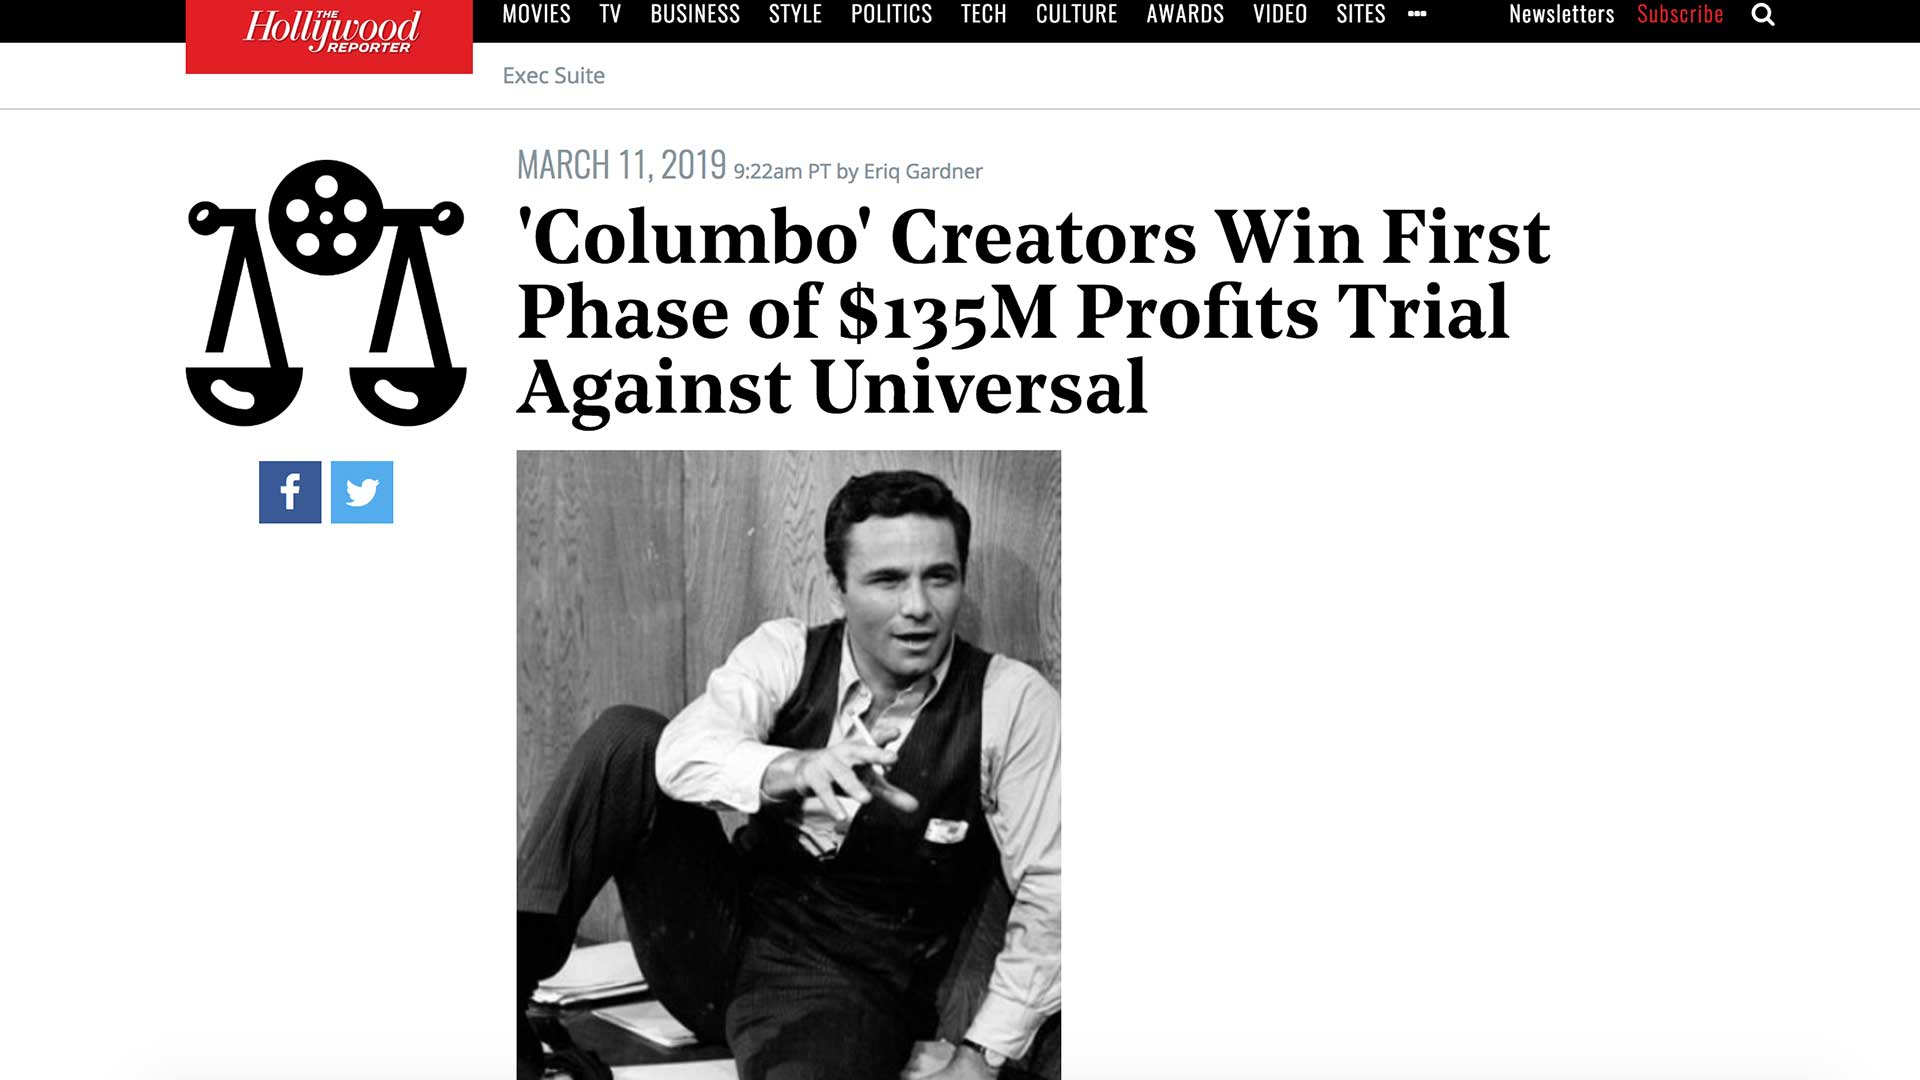 Fairness Rocks News 'Columbo' Creators Win First Phase of $135M Profits Trial Against Universal